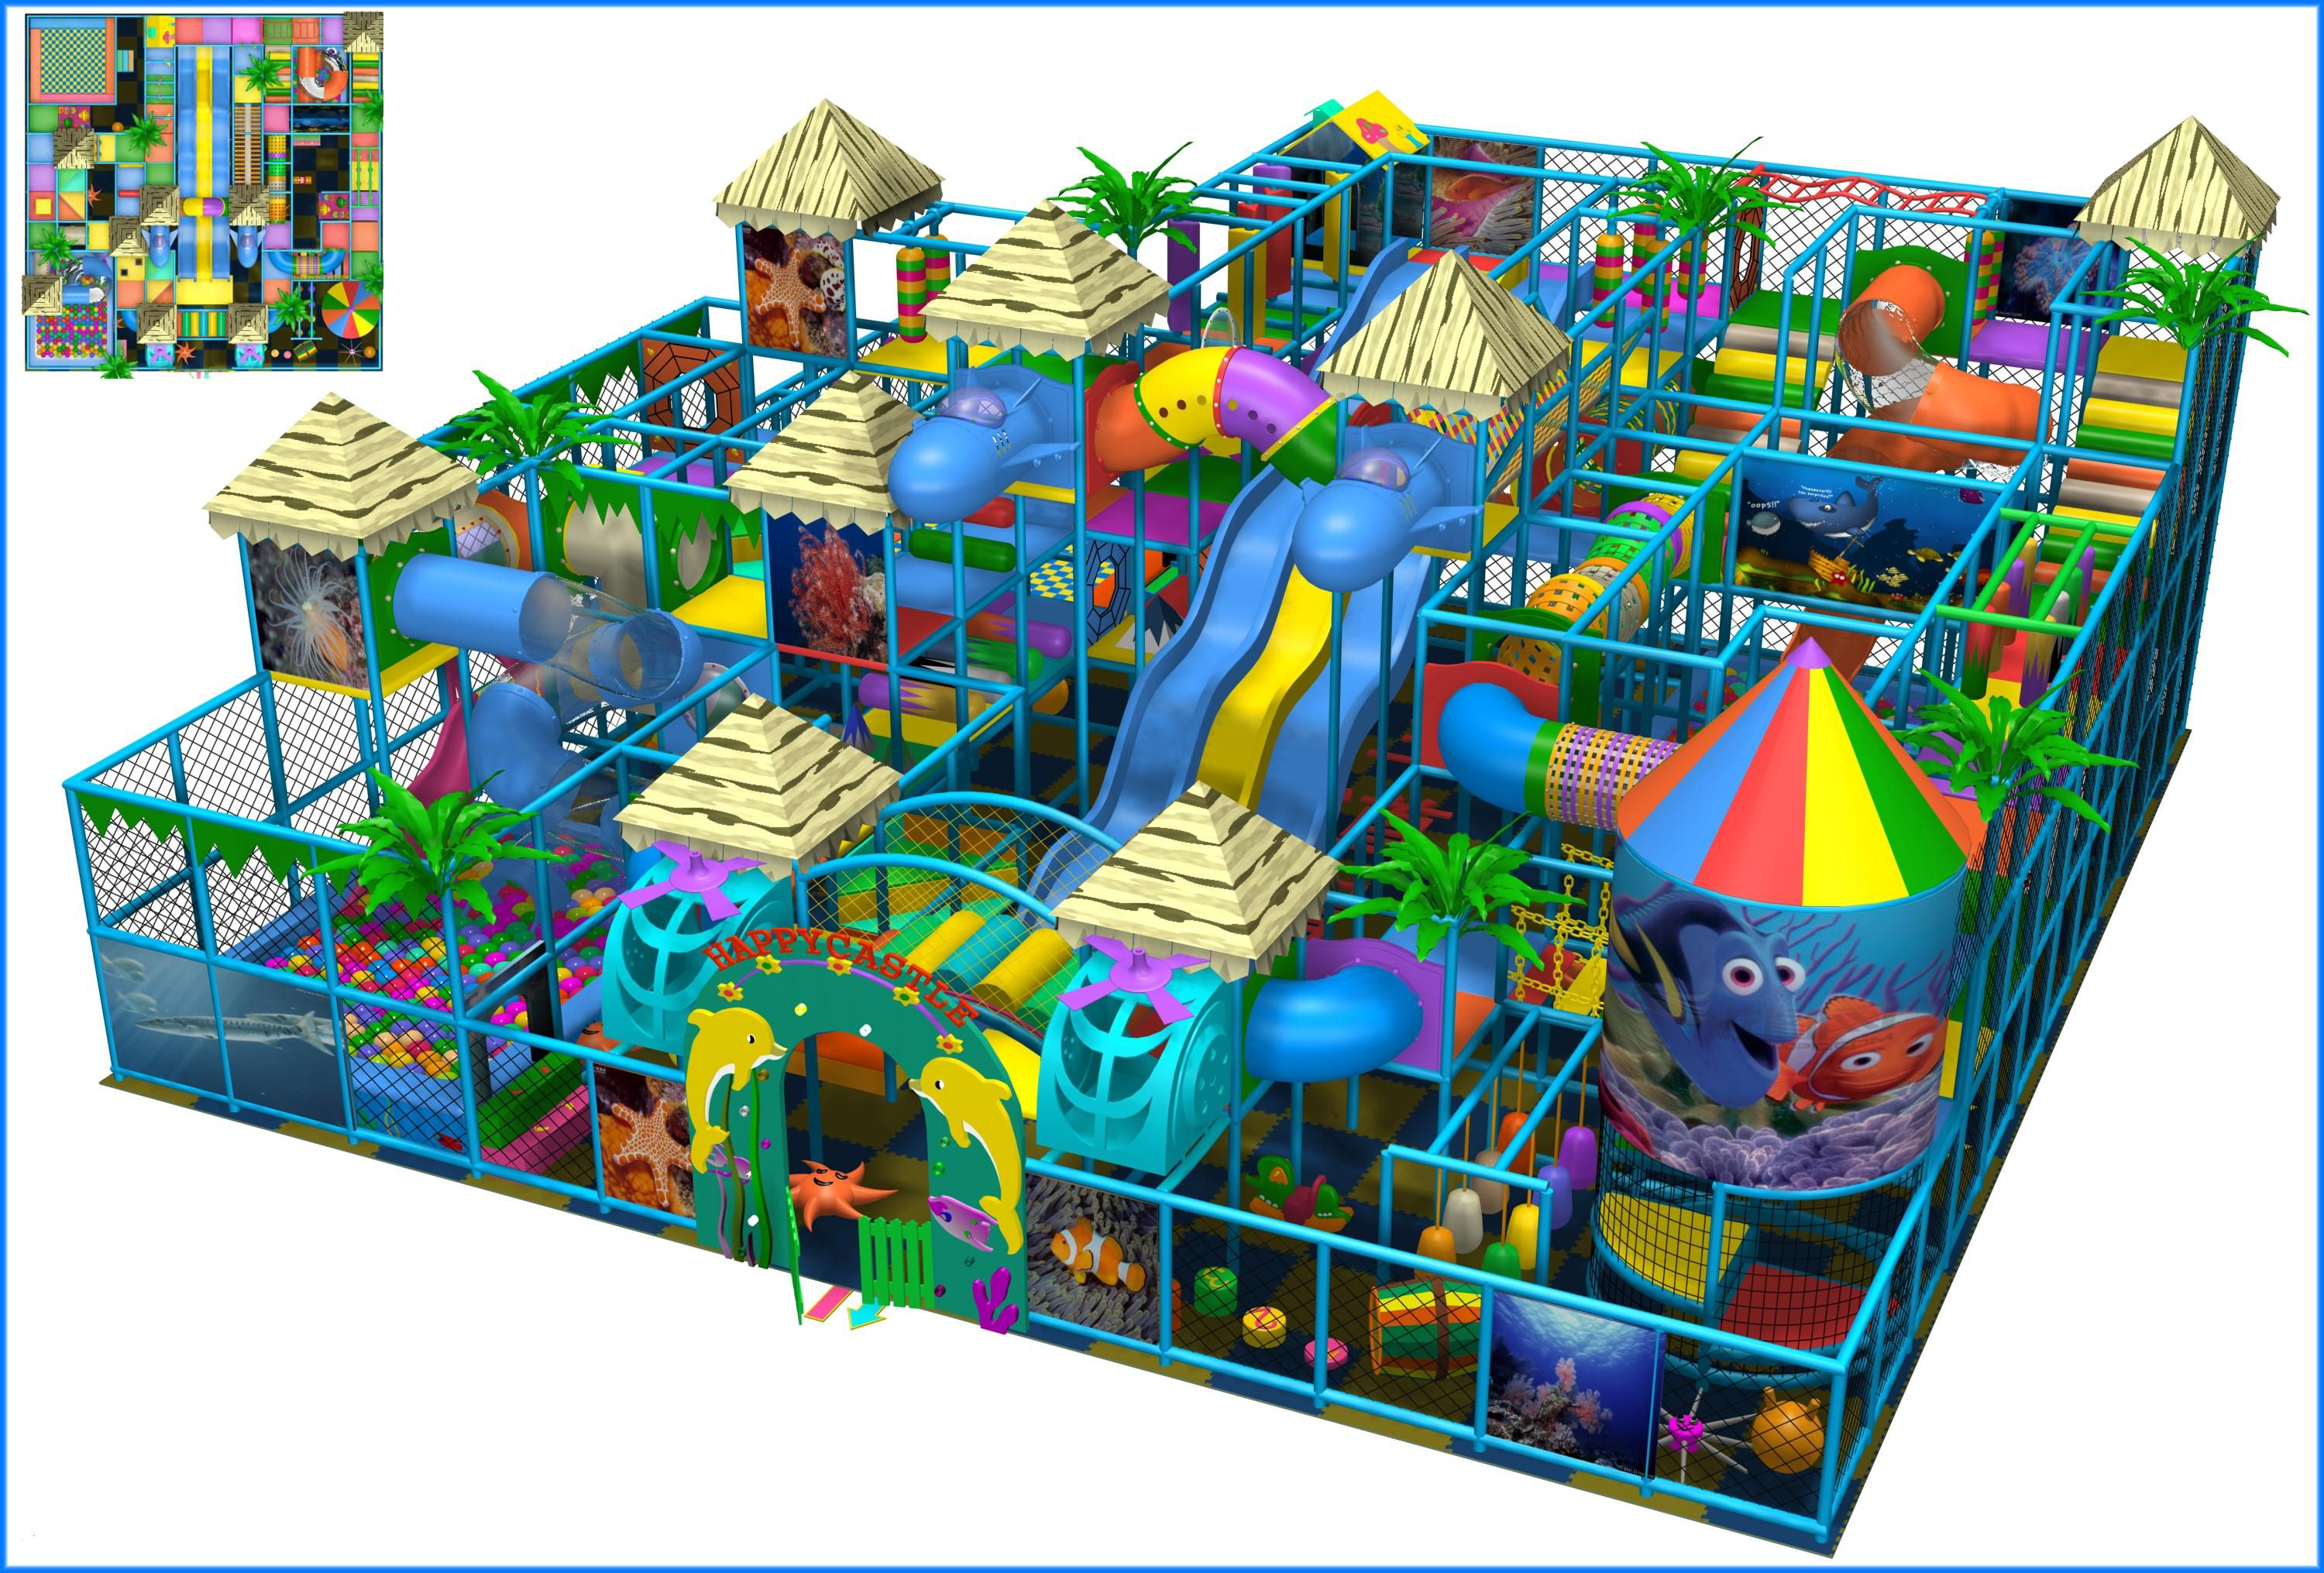 18 3000 2031 cat castle pinterest for Indoor playground for toddlers near me